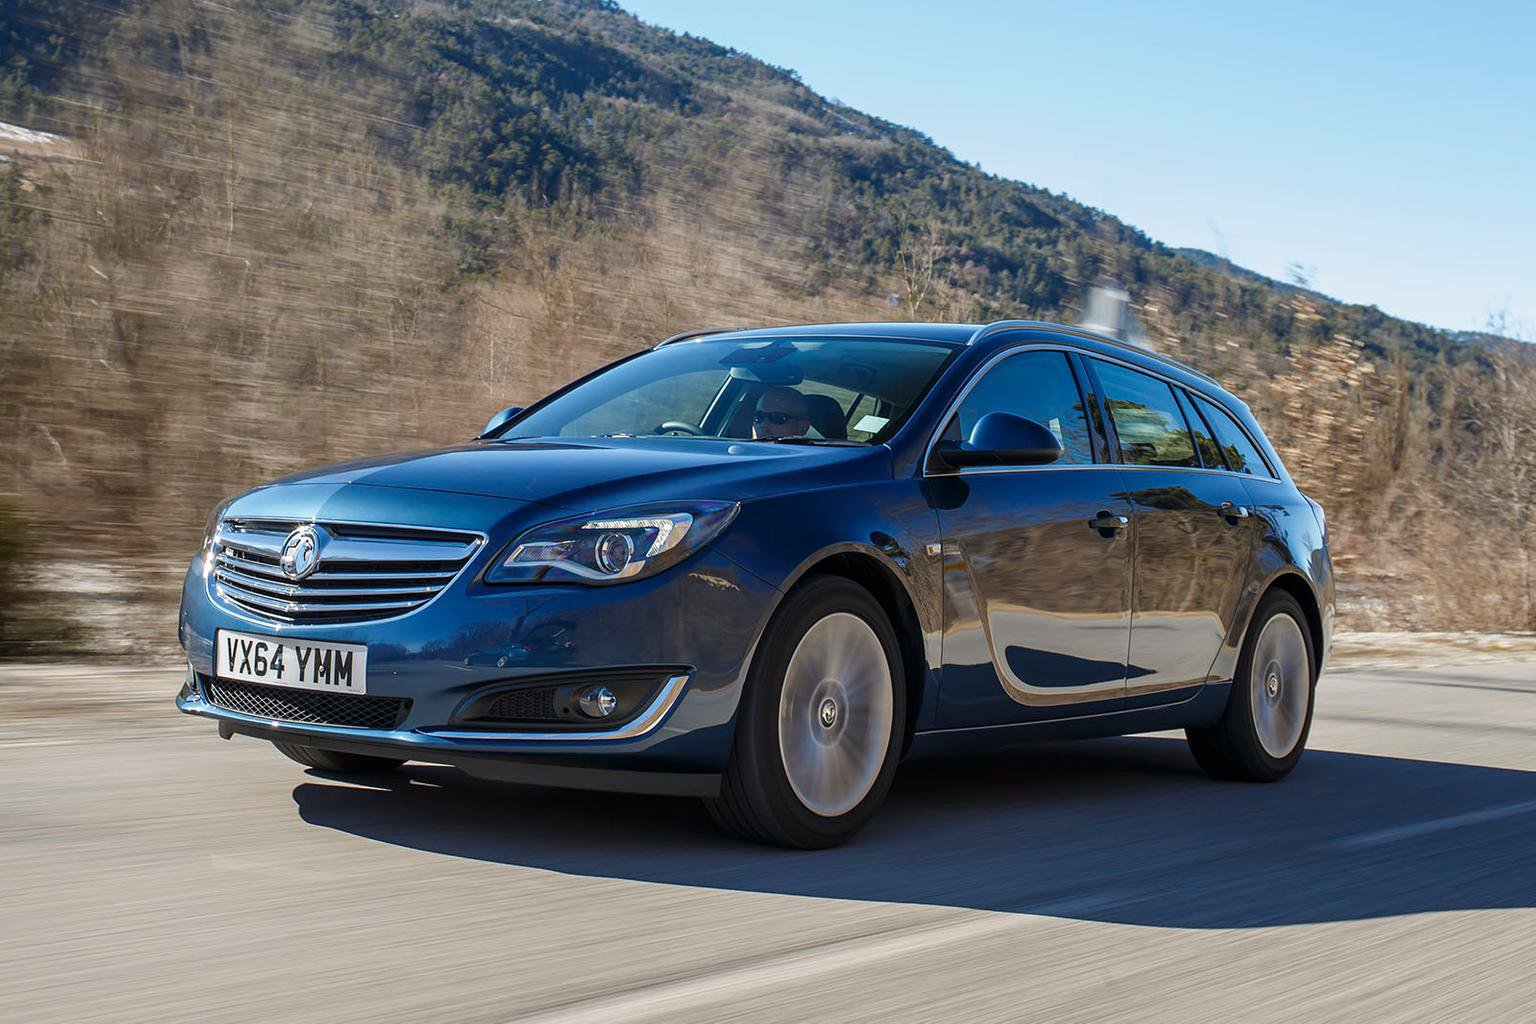 2015 Vauxhall Insignia Sports Tourer 1.6 CDTi SRI Nav review